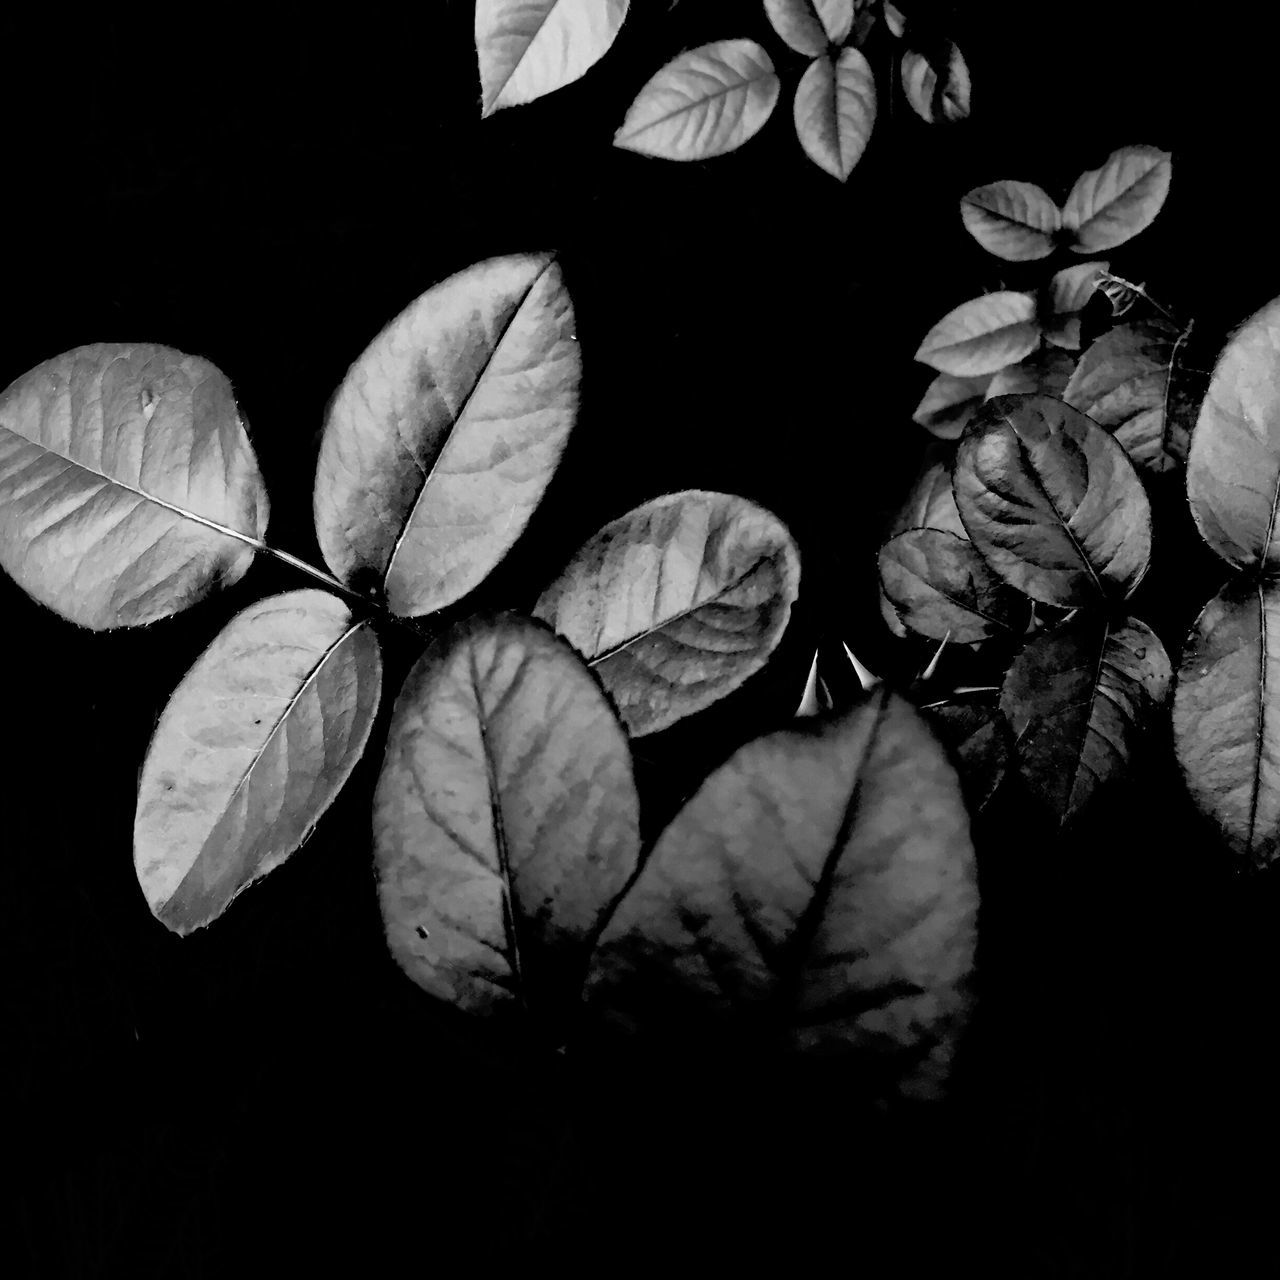 night, leaf, close-up, no people, nature, growth, beauty in nature, plant, outdoors, flower, black background, freshness